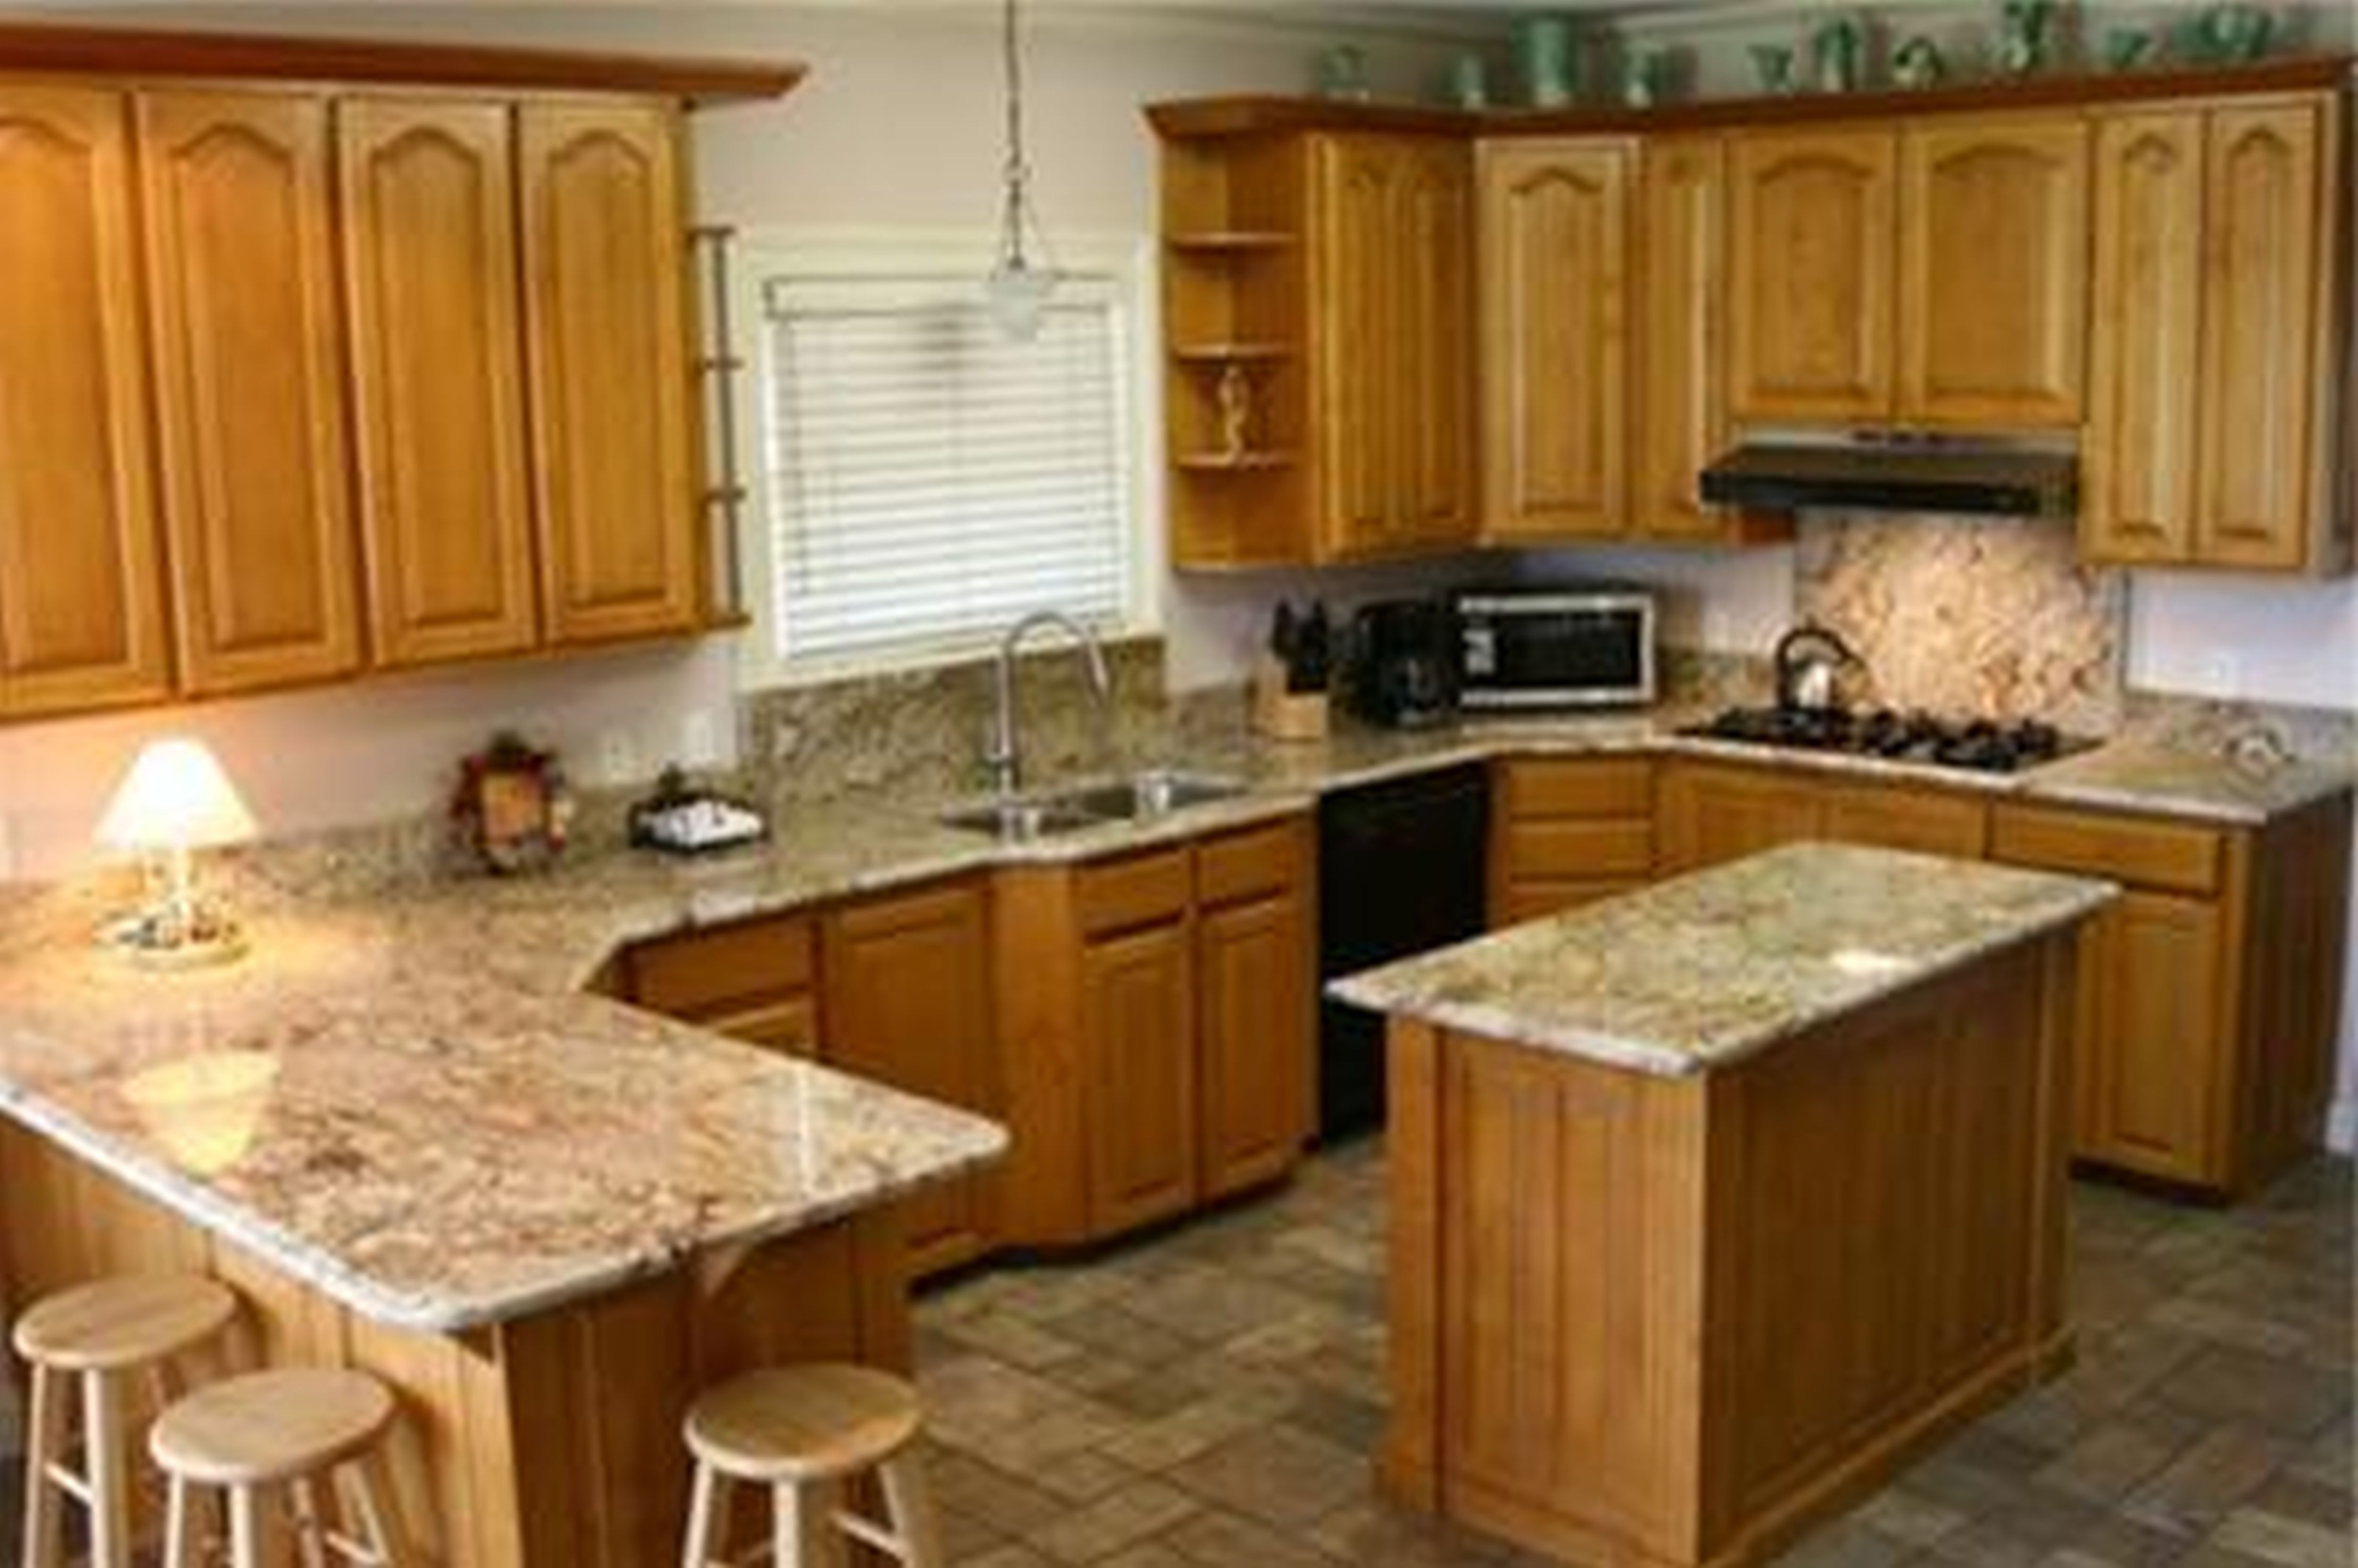 Man Made Quartz Countertops Cost How Much Soapstone Countertops Cost For Elegant Kitchen